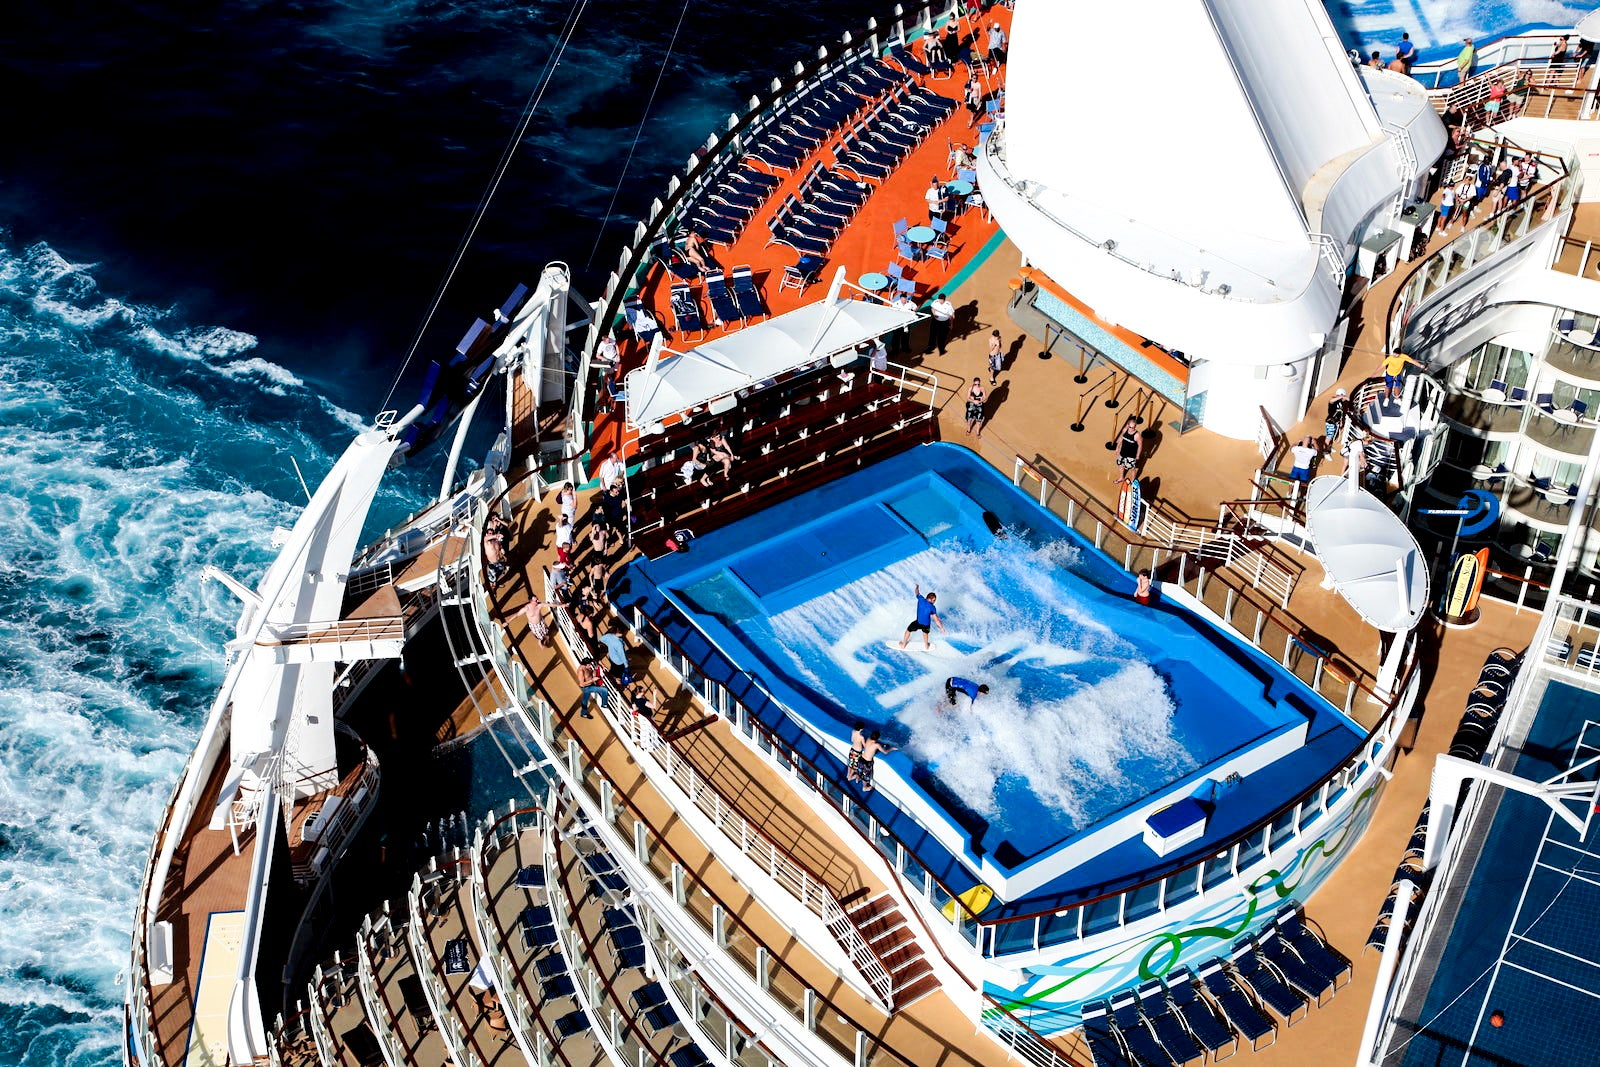 Ask the cruise director: What are your top tips for cruising?